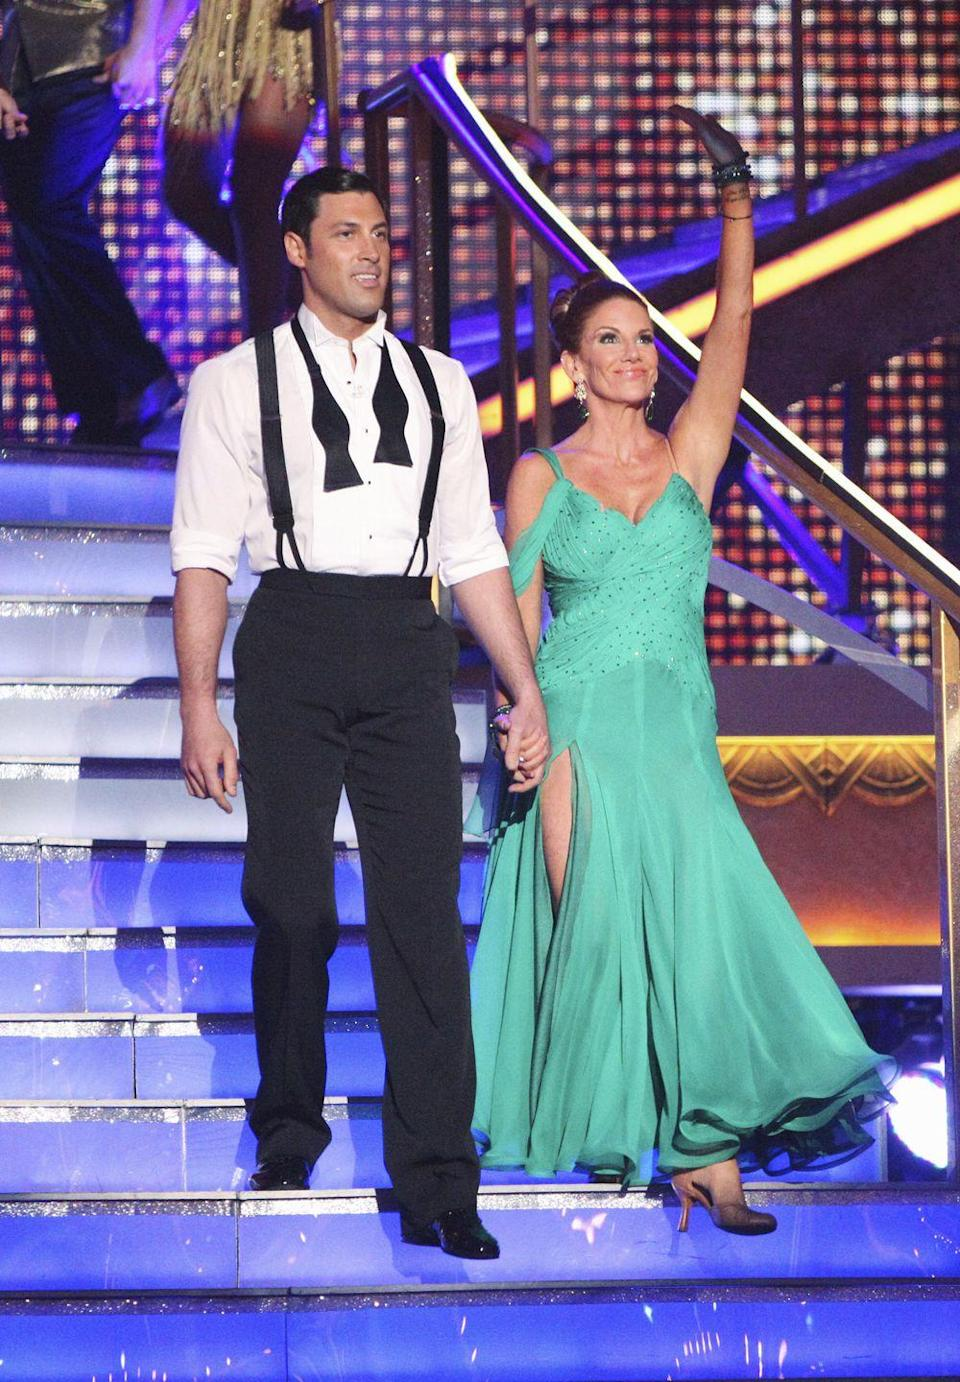 "<p>The former <em>Little House on the Prairie</em> actress headed to the hospital after a jolt to her head during her season 14 paso doble performance. She later tweeted that she had a ""mild concussion and whiplash"" from performing and hitting her head on the dance floor, <em><a href=""https://www.today.com/popculture/when-did-melissa-gilberts-head-hit-floor-dancing-stars-699215"" rel=""nofollow noopener"" target=""_blank"" data-ylk=""slk:Today"" class=""link rapid-noclick-resp"">Today </a></em>reported. She returned the following week to perform, but was sent home. </p>"